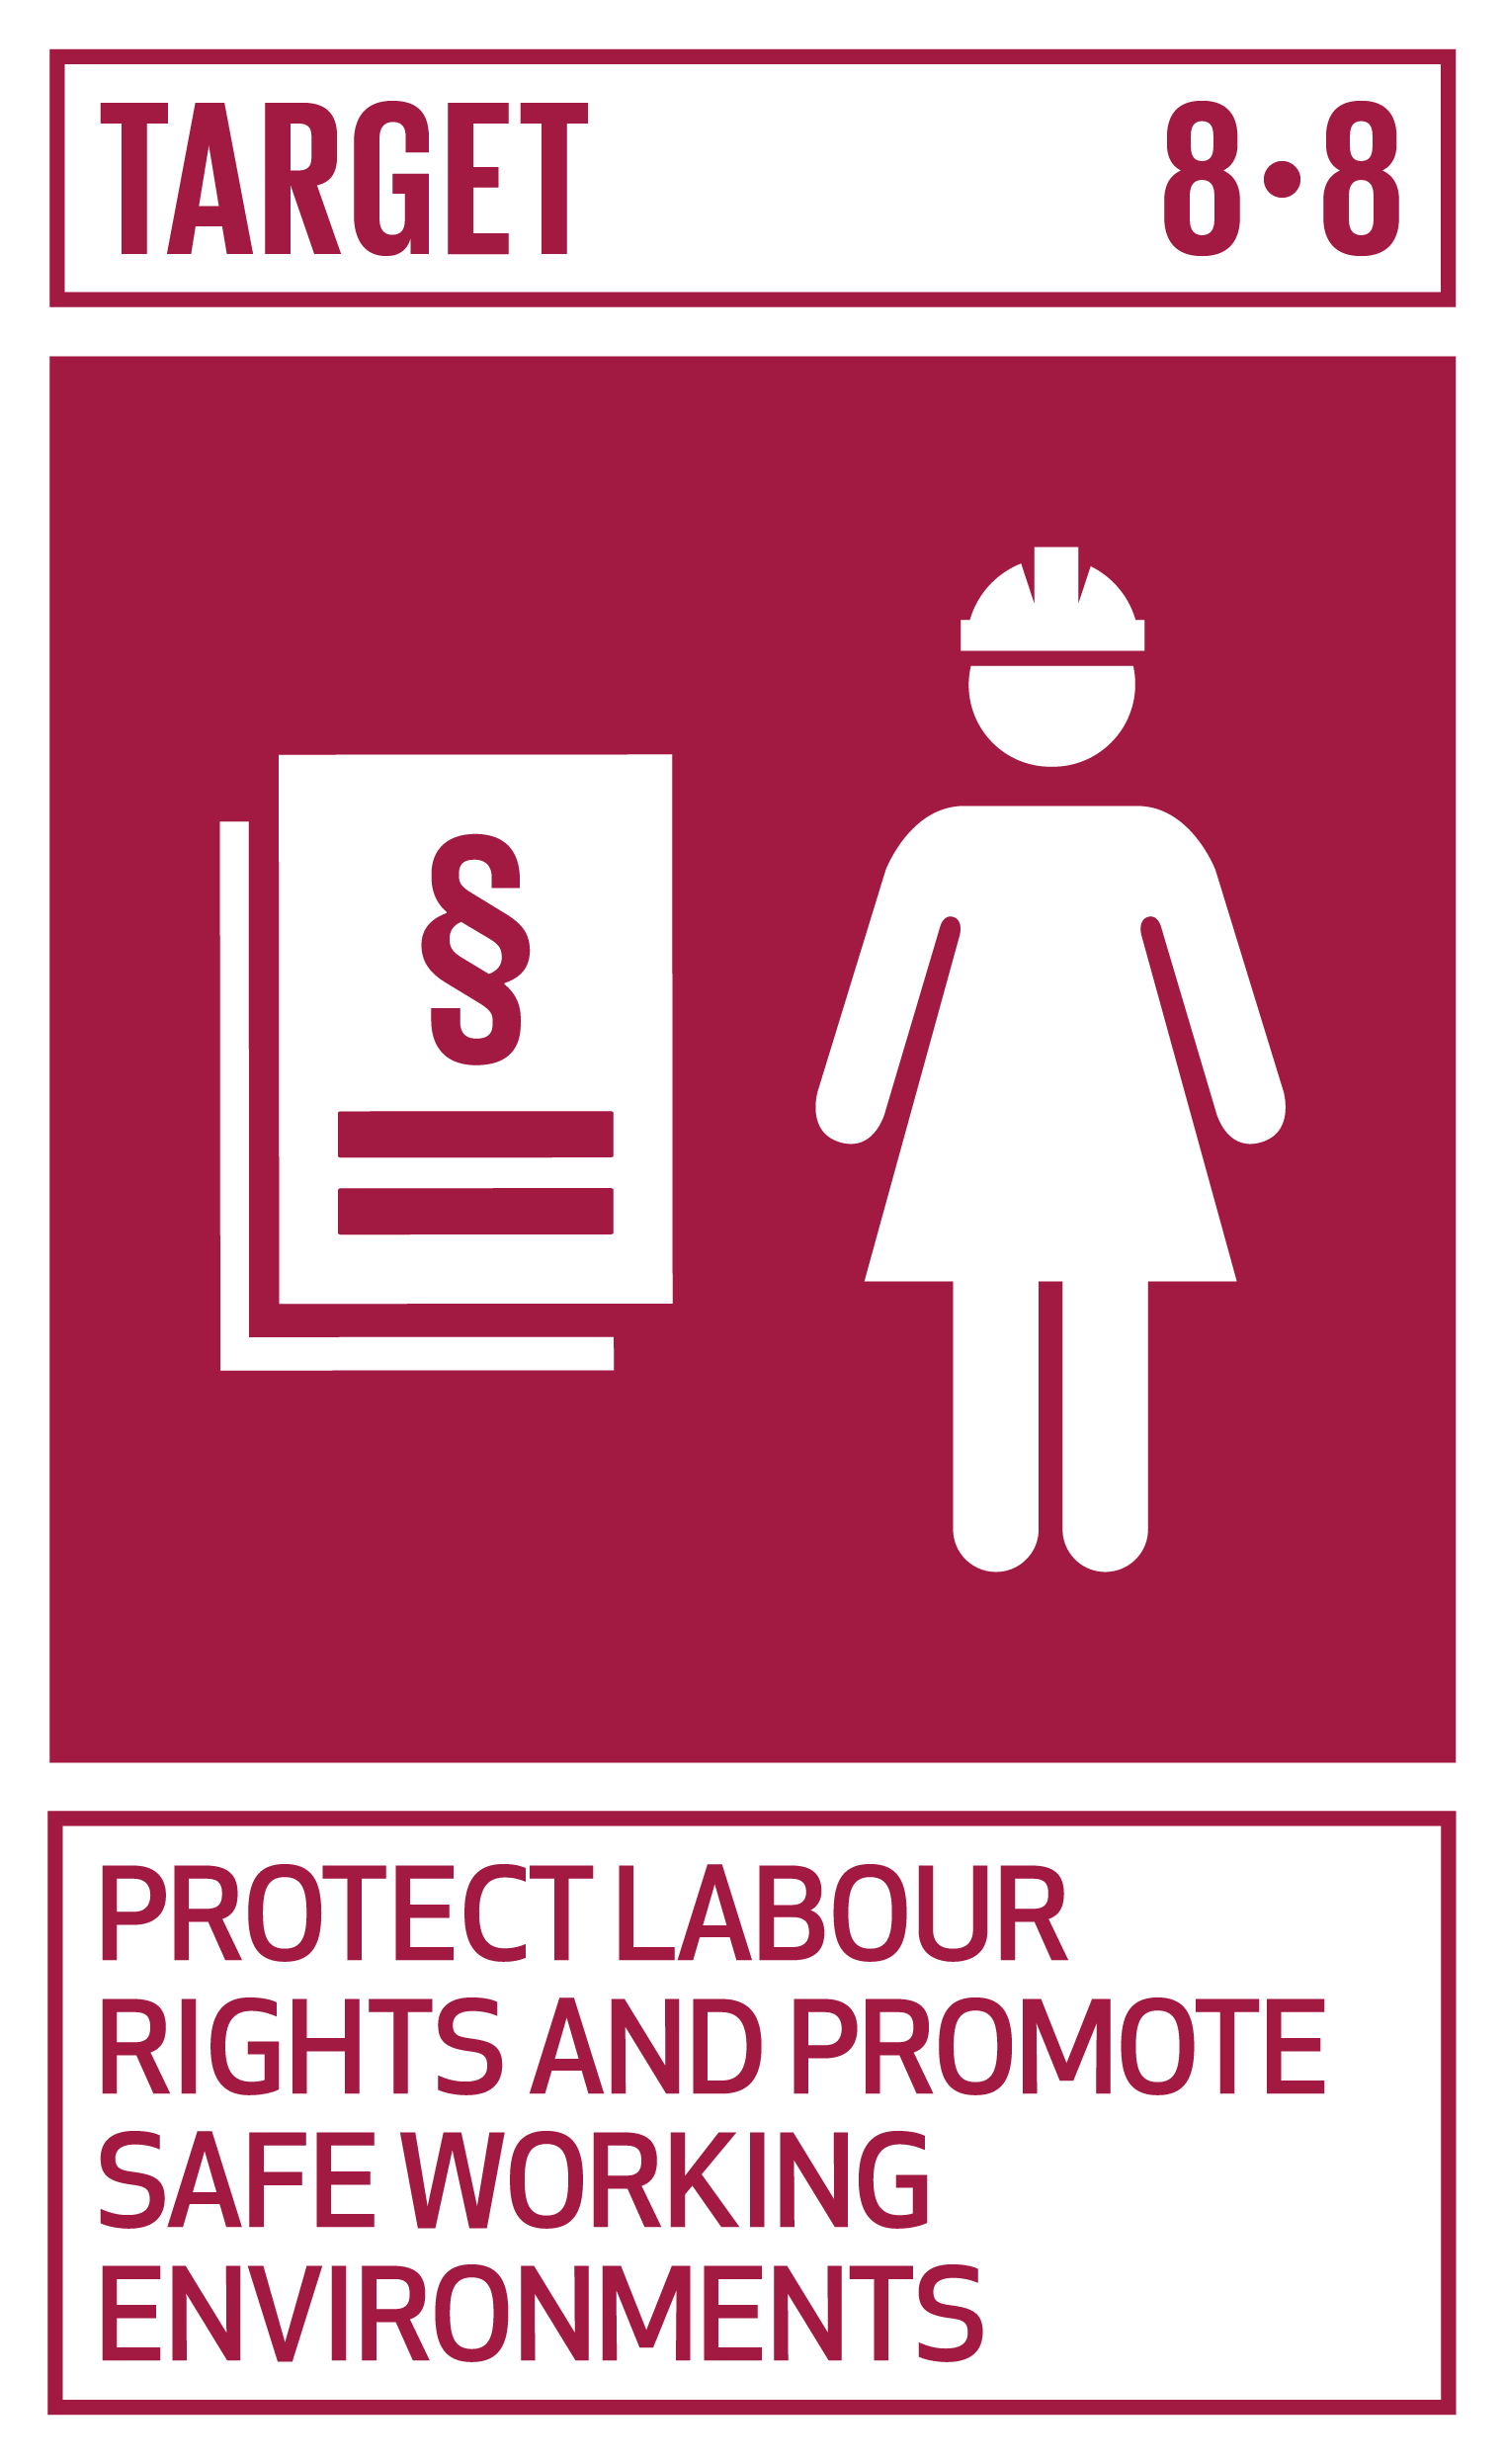 Protect labour rights and promote safe and secure working environments for all workers, including migrant workers, in particular women migrants, and those in precarious employment.   INDICATORS    8.8.1  Frequency rates of fatal and non-fatal occupational injuries, by sex and migrant status   8.8.2  Level of national compliance with labour rights (freedom of association and collective bargaining) based on International Labour Organization (ILO) textual sources and national legislation, by sex and migrant status